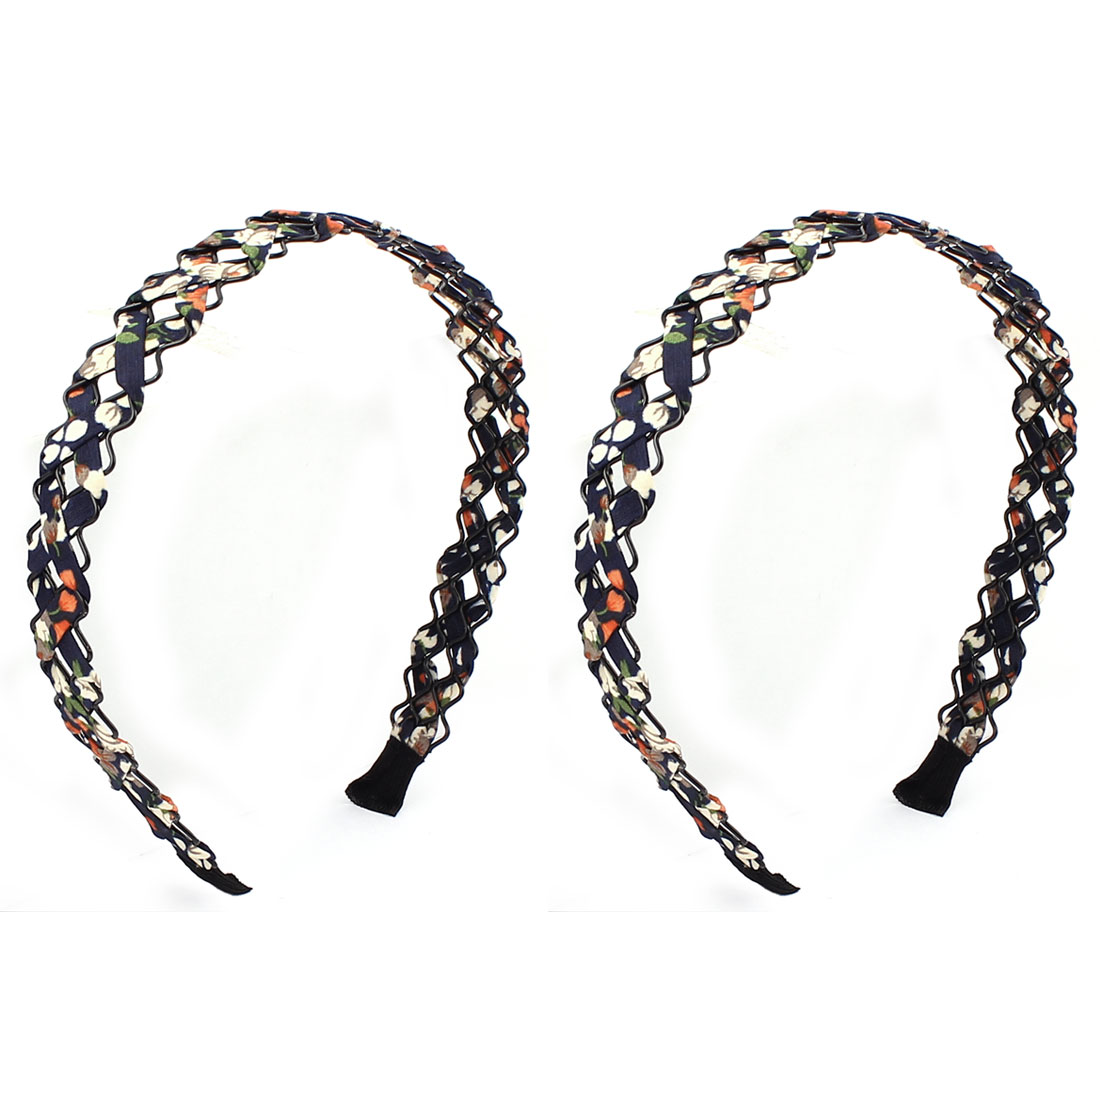 Girl Blue Black Braided Rope Cloth Pattern Weave Decor Hairband Hair Hoop 2 PCS